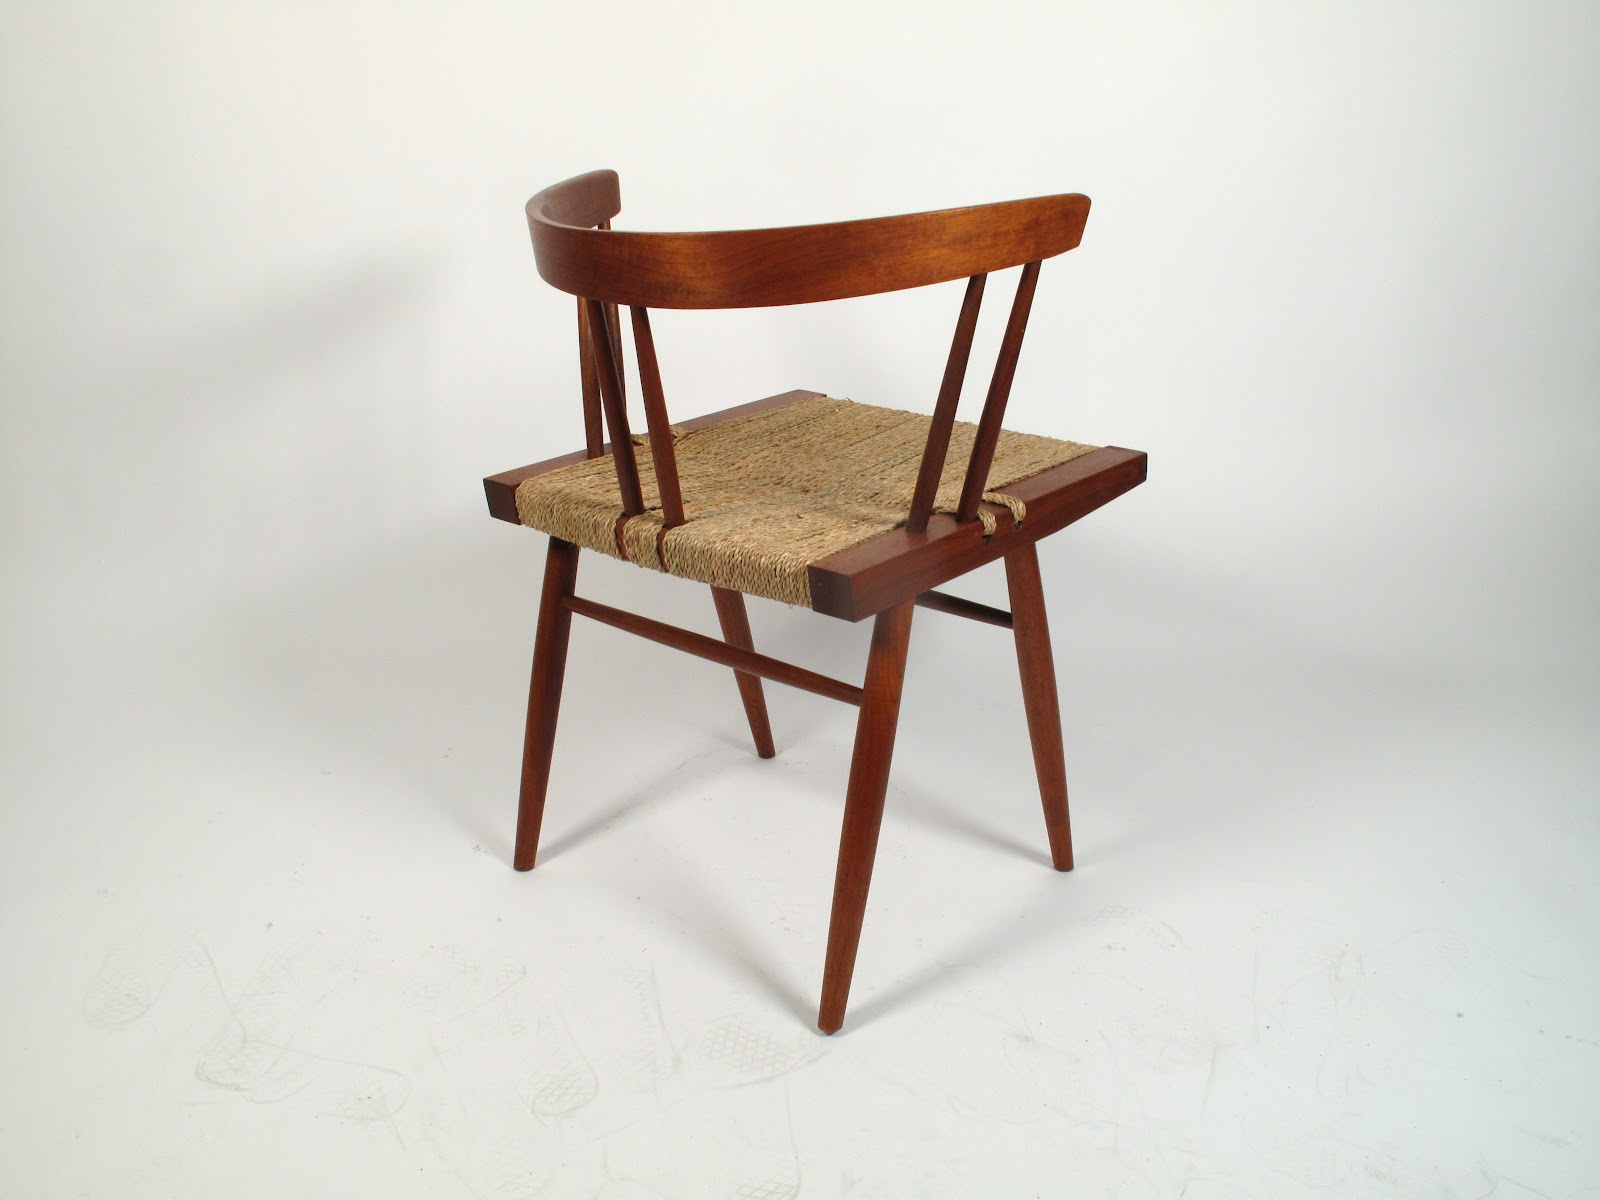 Just in Modern George Nakashima Grass Seat Chair 1960 s